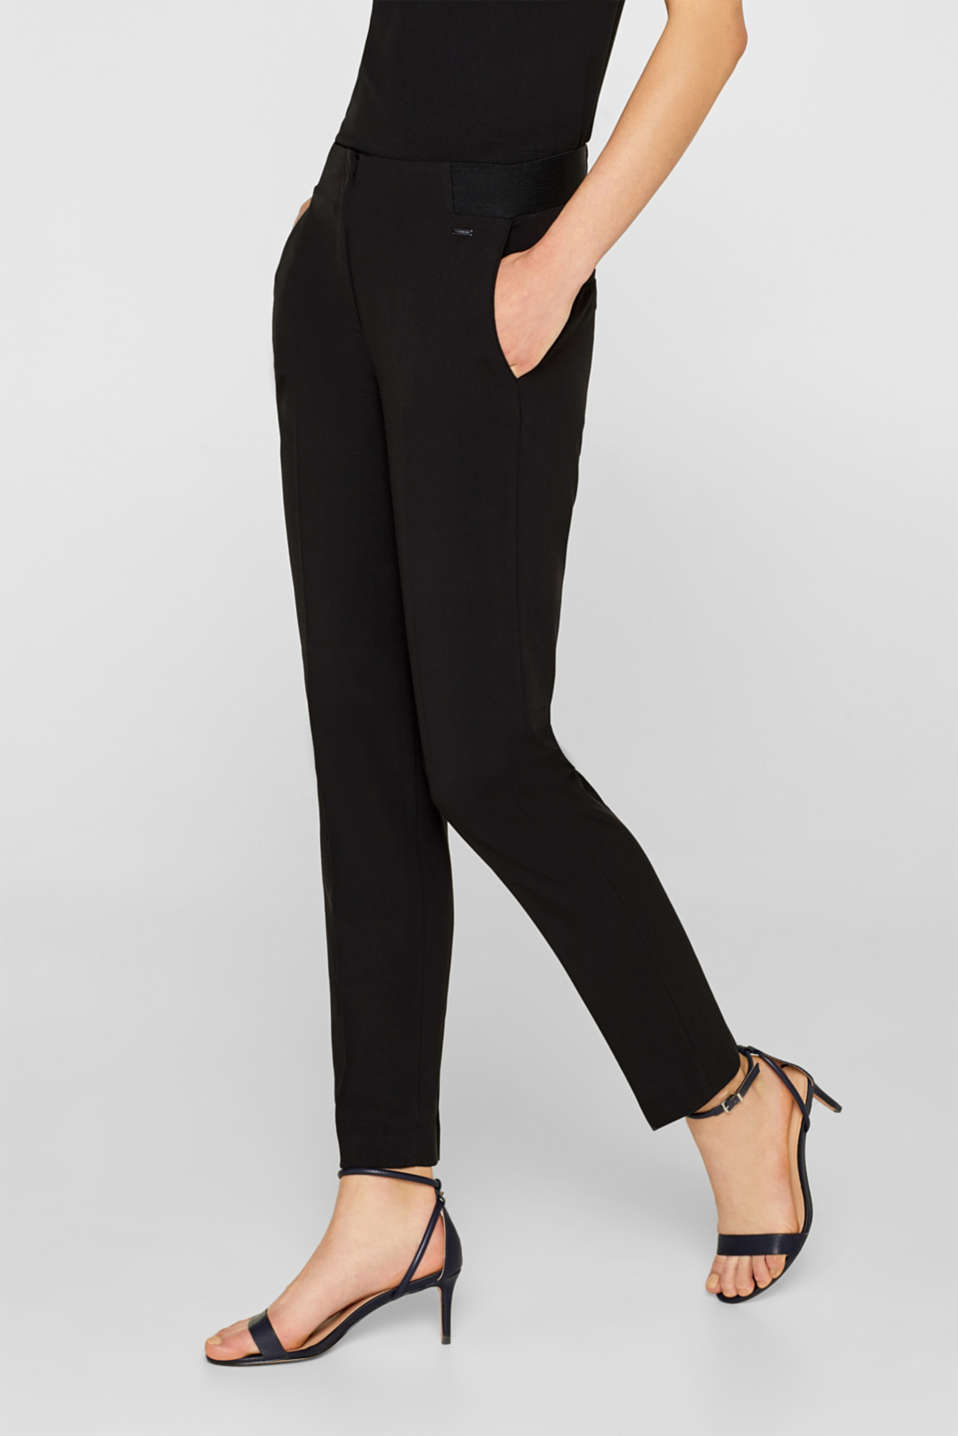 Esprit - Stretch trousers with a waistband elasticated at the side